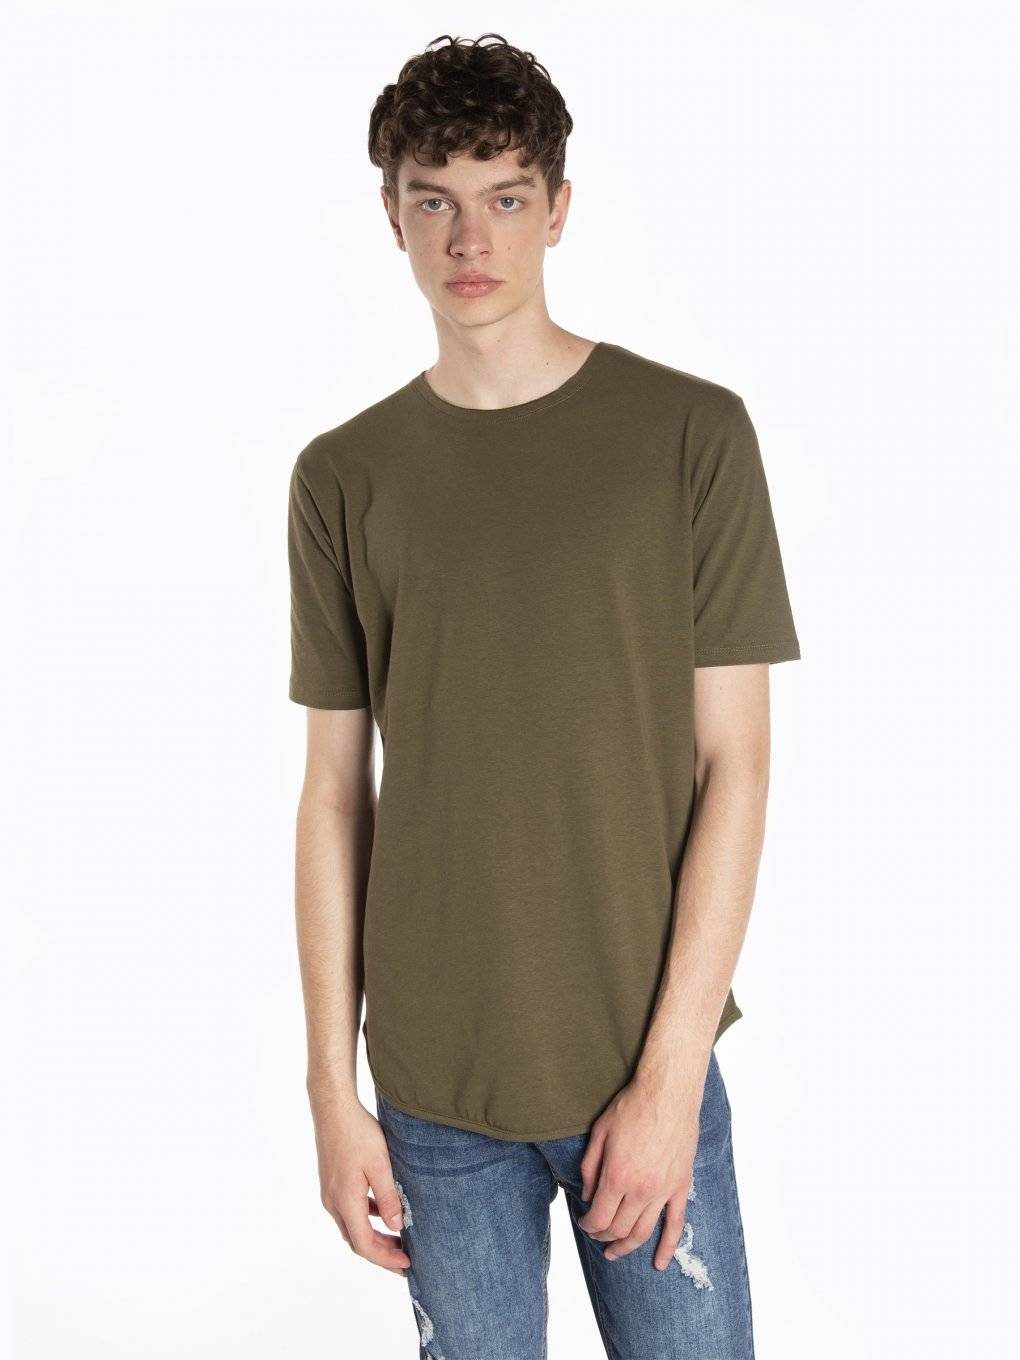 Longline stretch jersey t-shirt